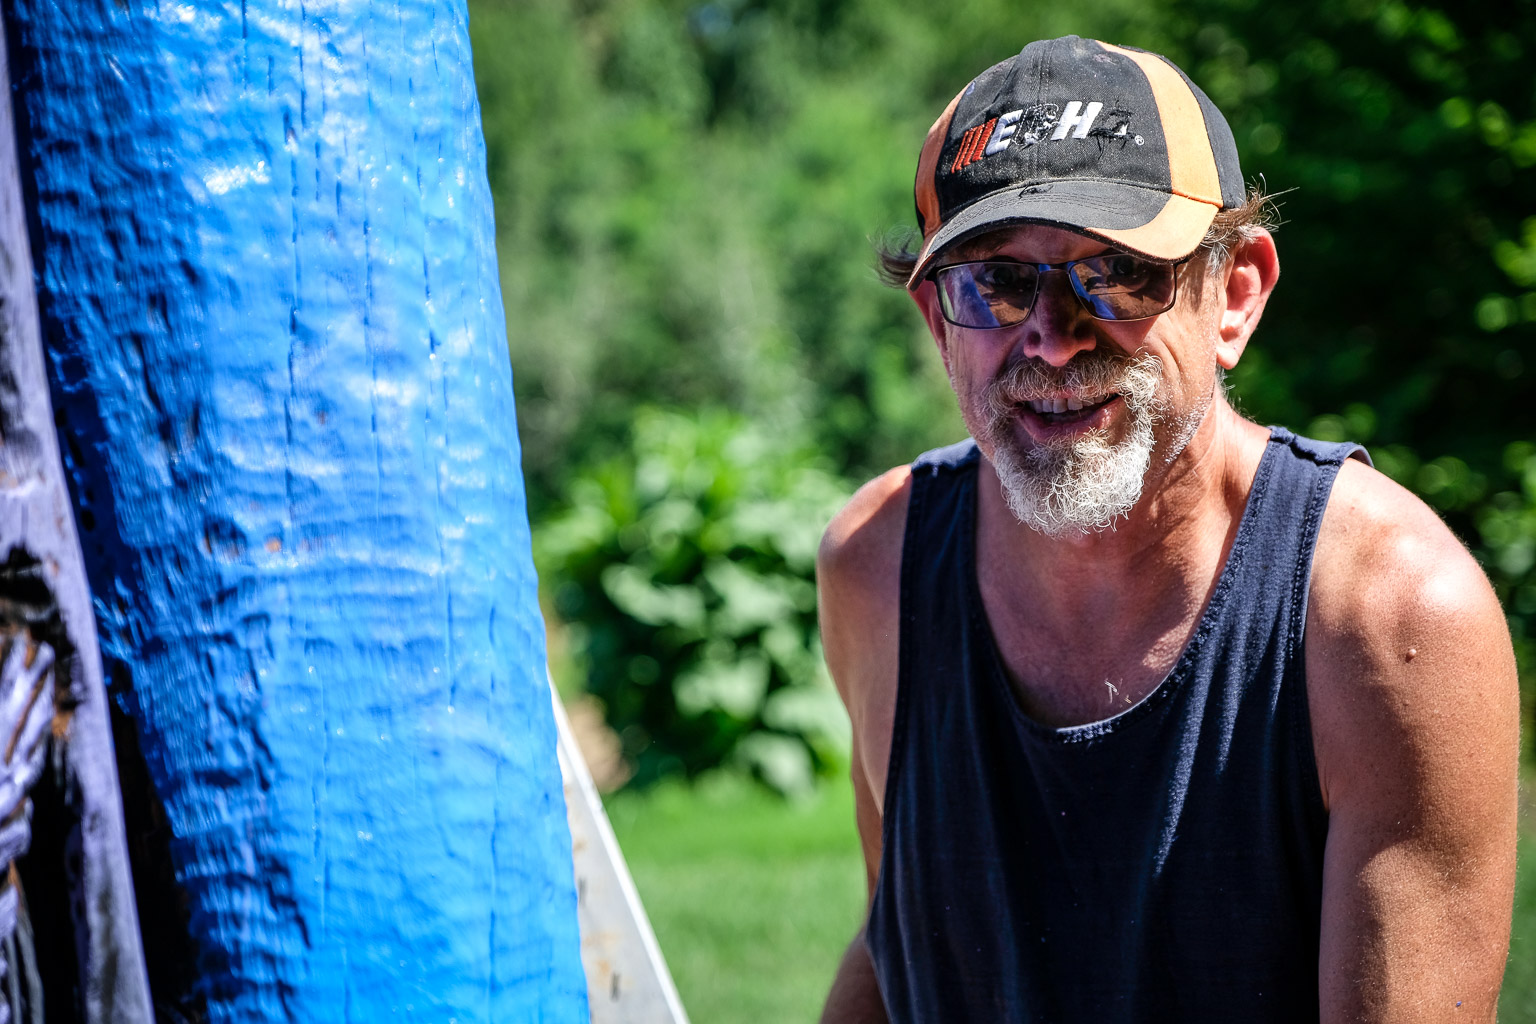 Remember that Achilles I mentioned? Turns out our man Glenn is a master woodworker, but he's also as colorblind as they come. Here he is as proud as can be, painting blue carrots! Somebody at the Arboretum is gonna get canned over this.